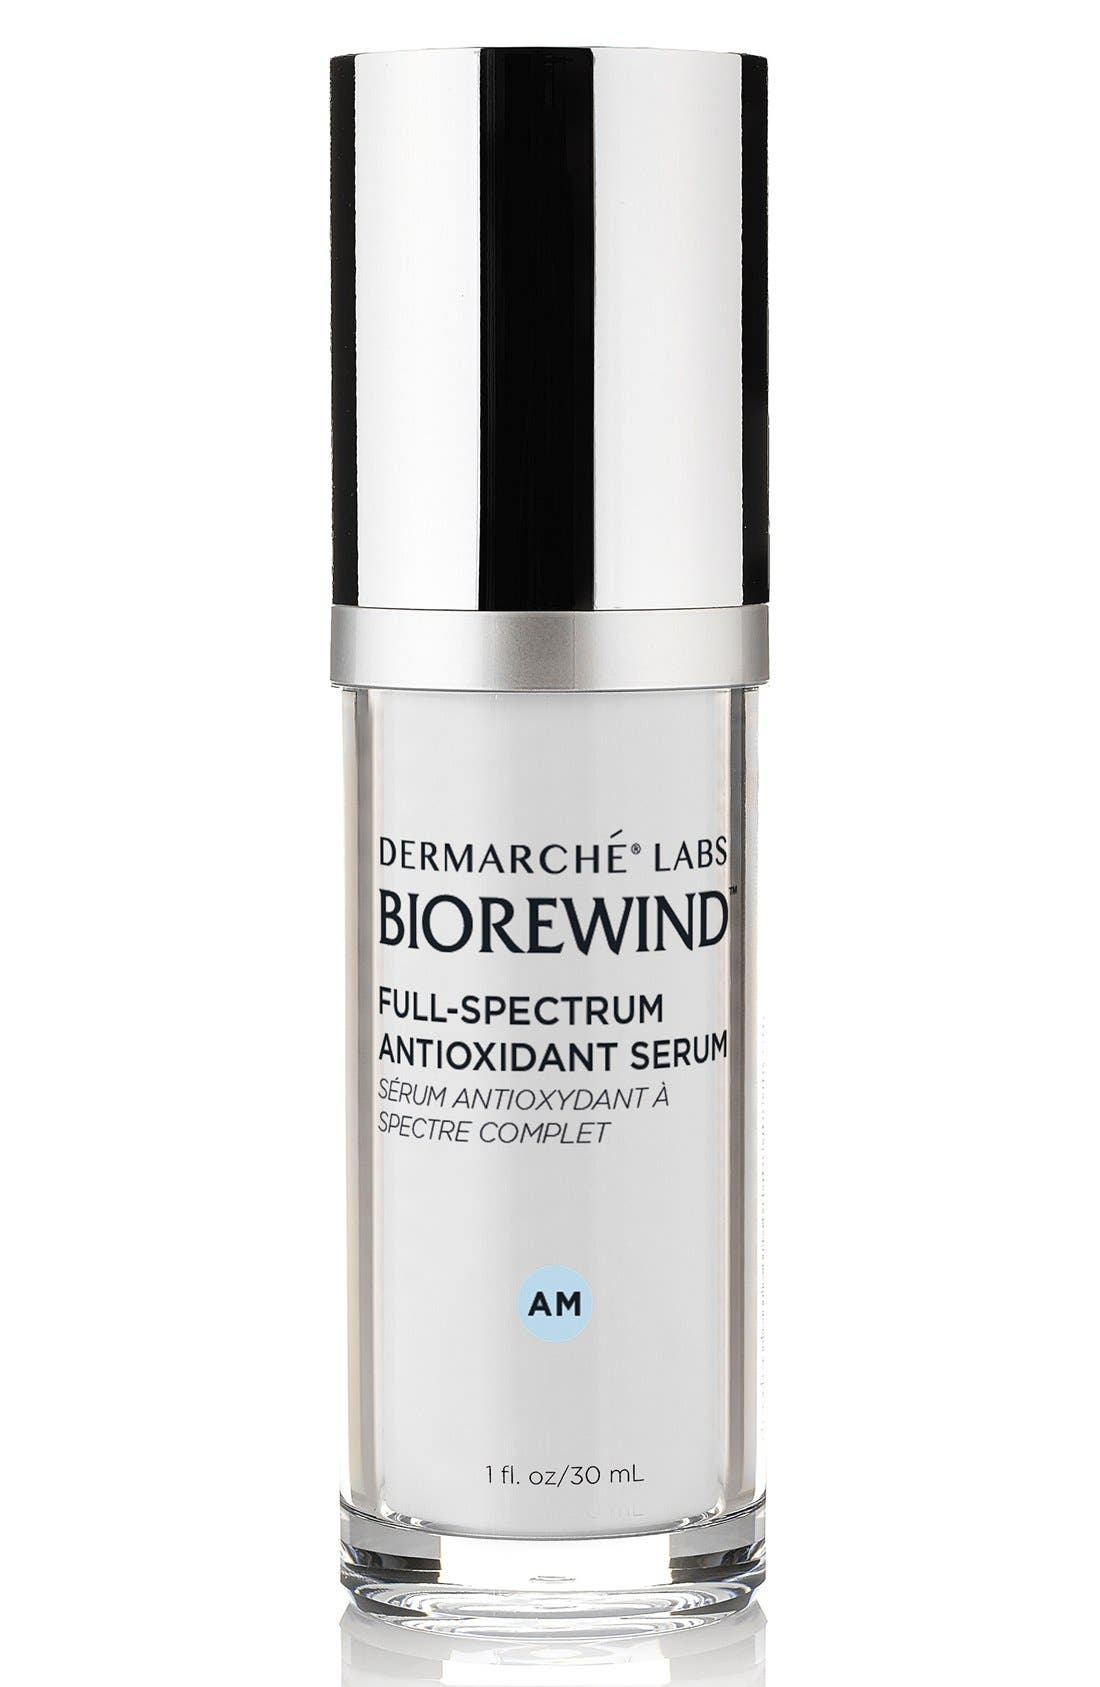 Dermarché<sup>®</sup> Labs 'BioRewind AM' Full-Spectrum Antioxidant Serum,                         Main,                         color, NO COLOR